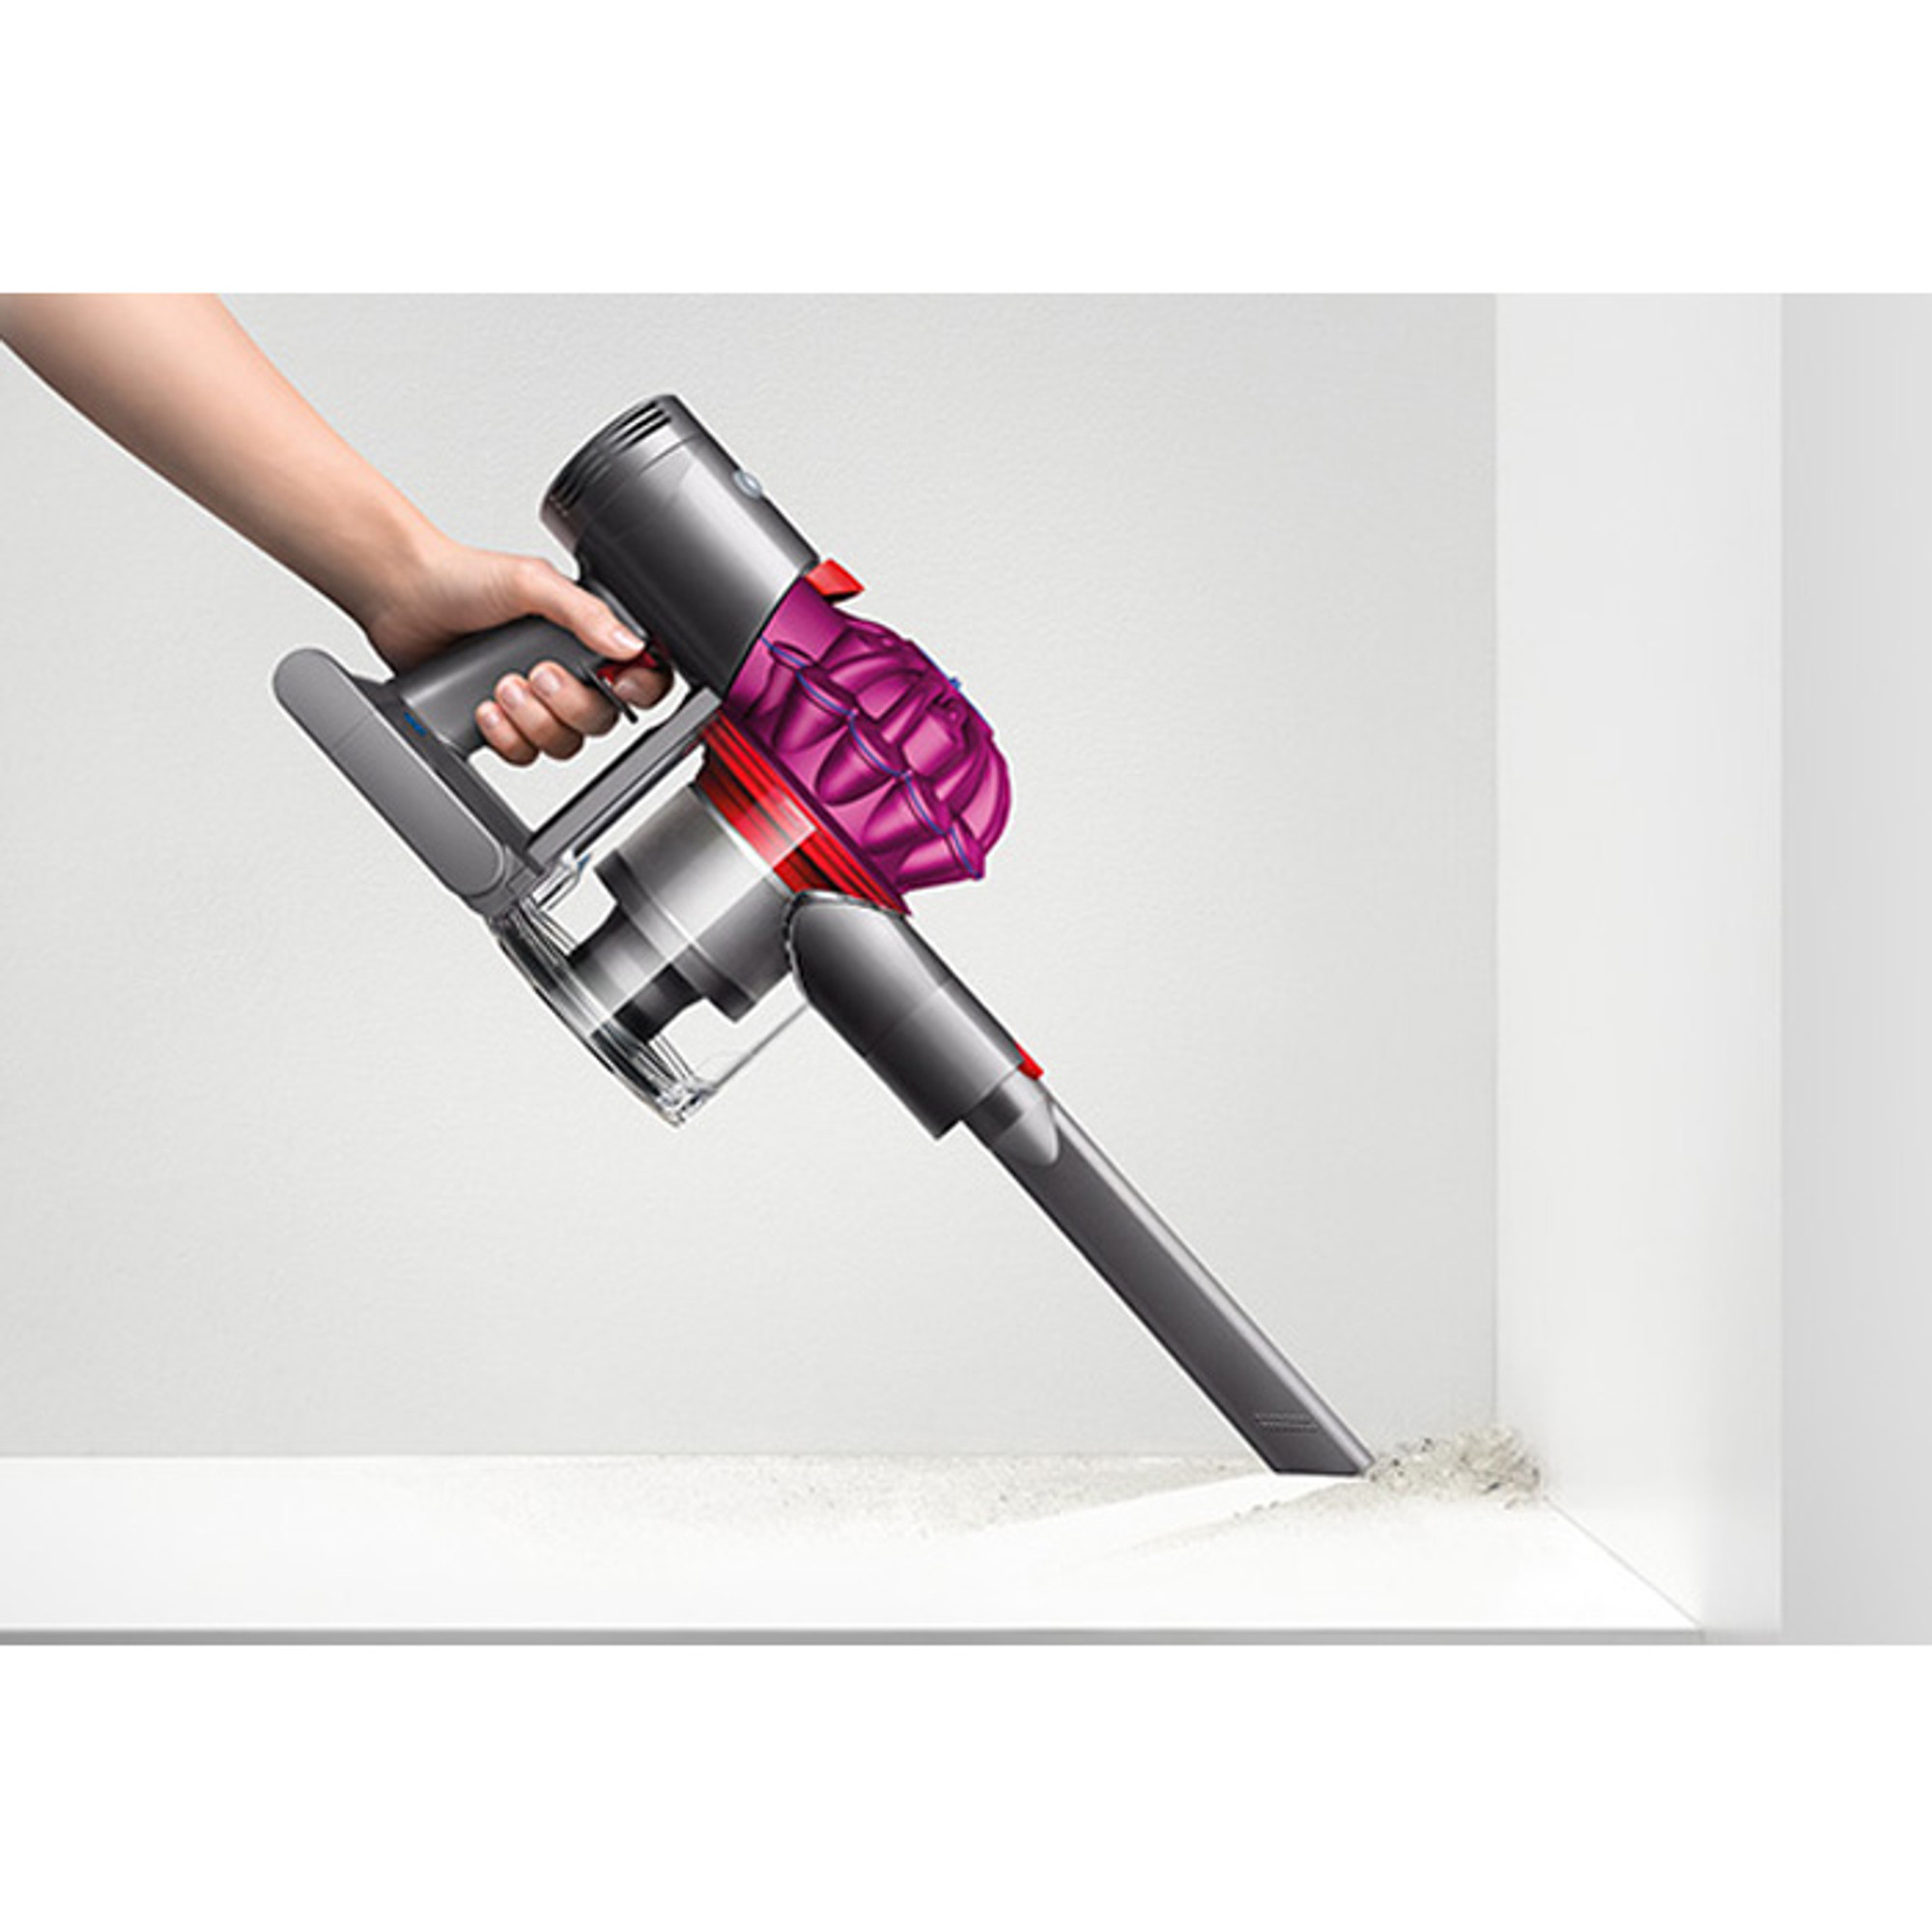 buy dyson v7 motorhead cordless vacuum from canada at. Black Bedroom Furniture Sets. Home Design Ideas